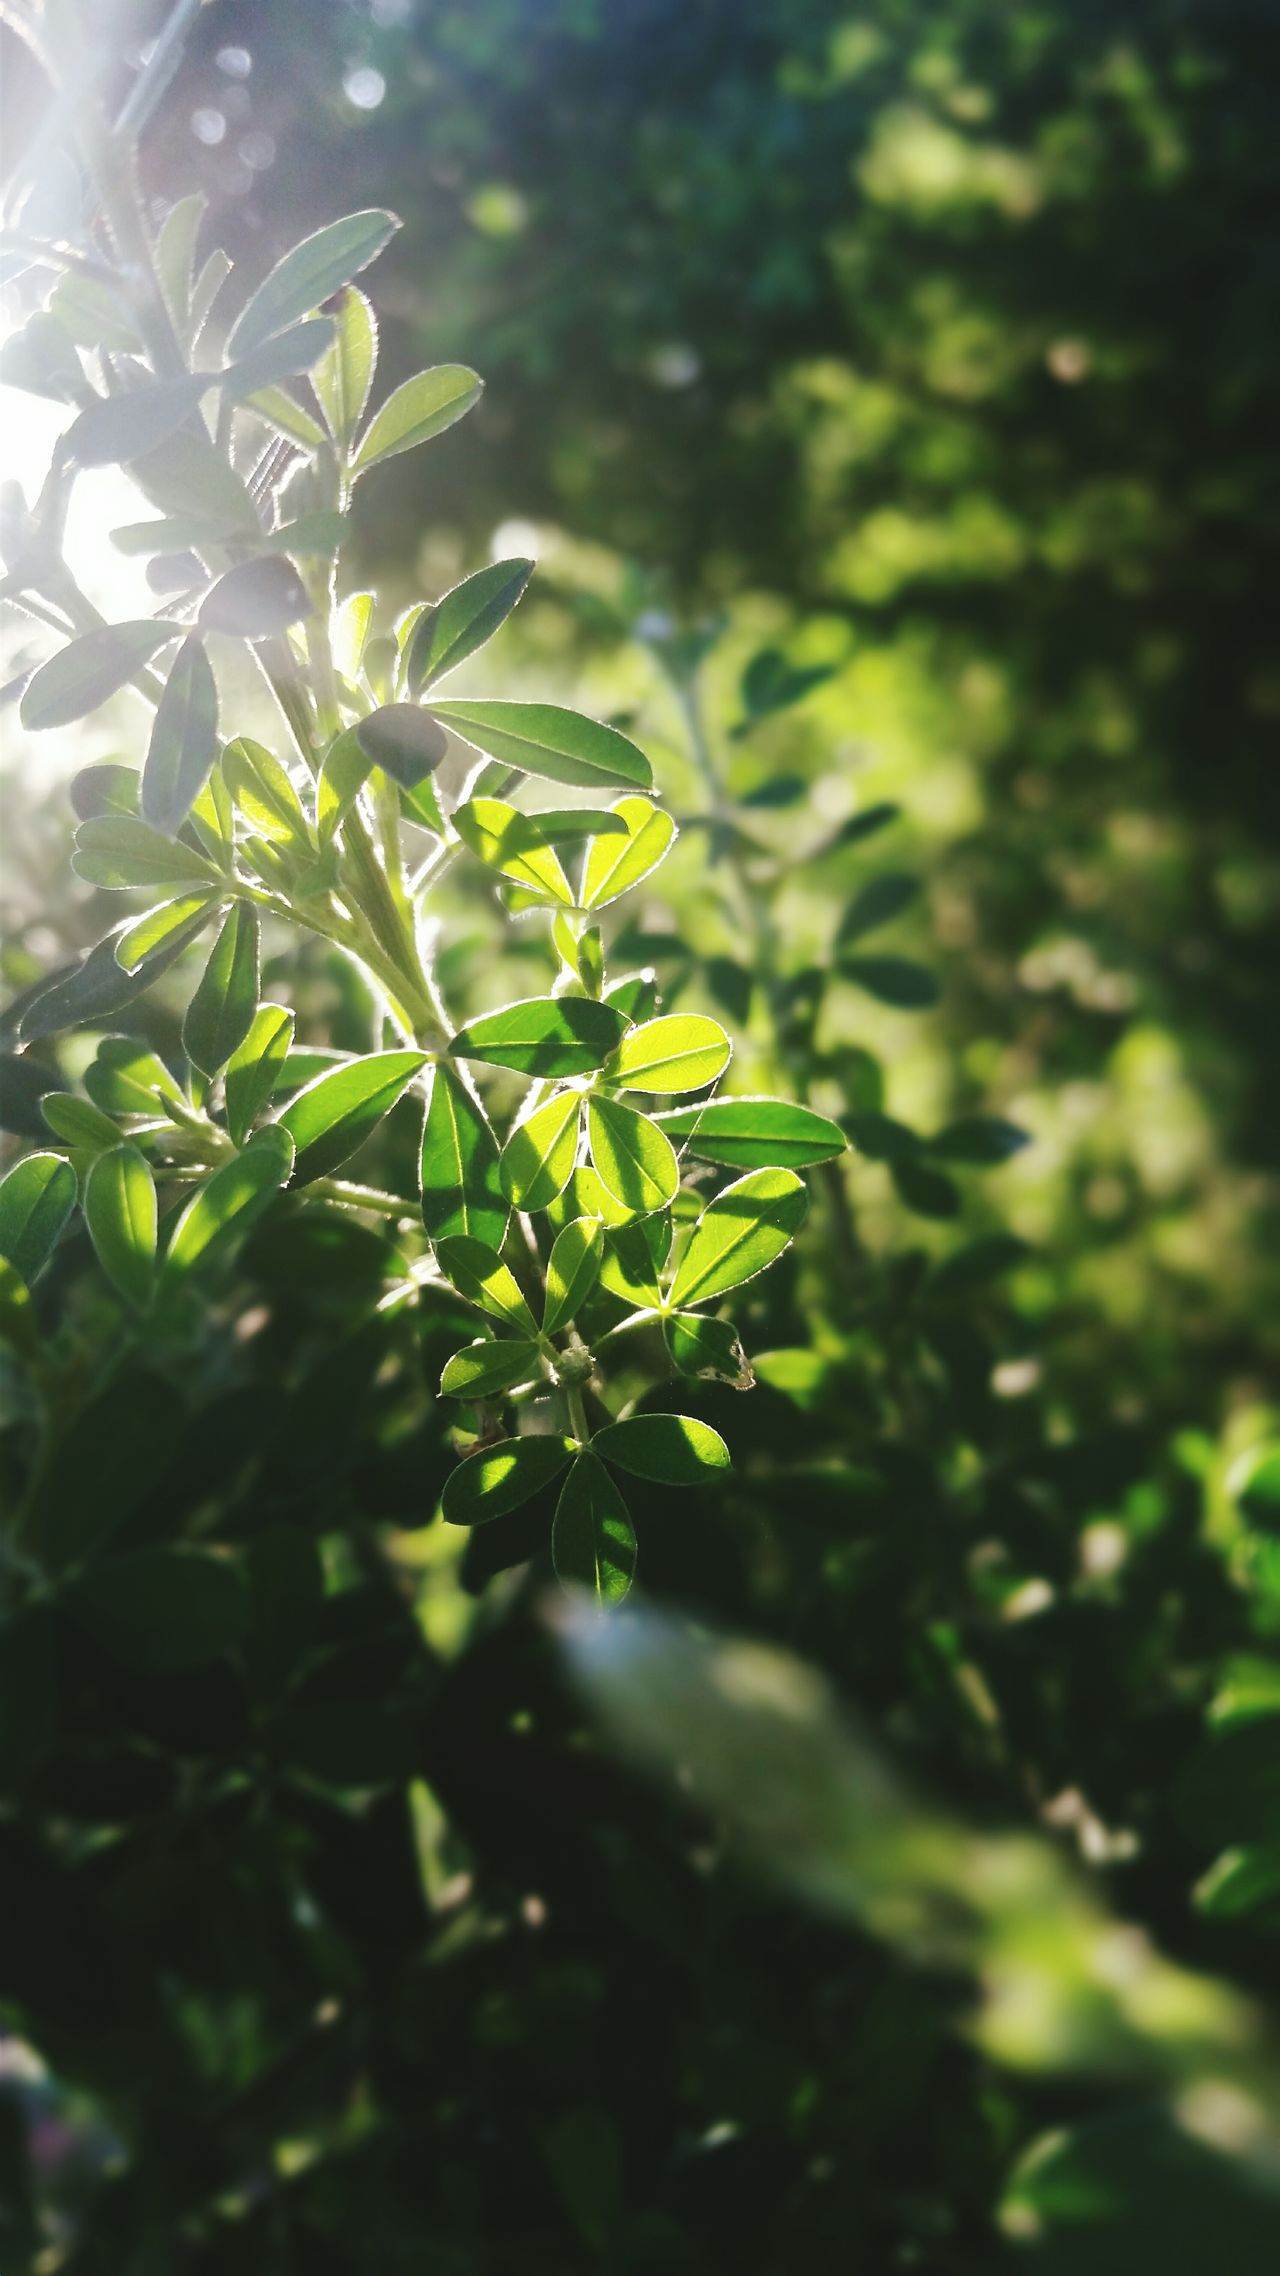 'Summer time sadness' - Taminick Brooks Summer Summertime Summer ☀ Summer Vibes Summer Memories 🌄 Summer2016 Green Green Green Green!  Green Leaves Green Nature Nature Nature Photography Nature On Your Doorstep Leaves🌿 Sunlight And Shadow First Eyeem Photo